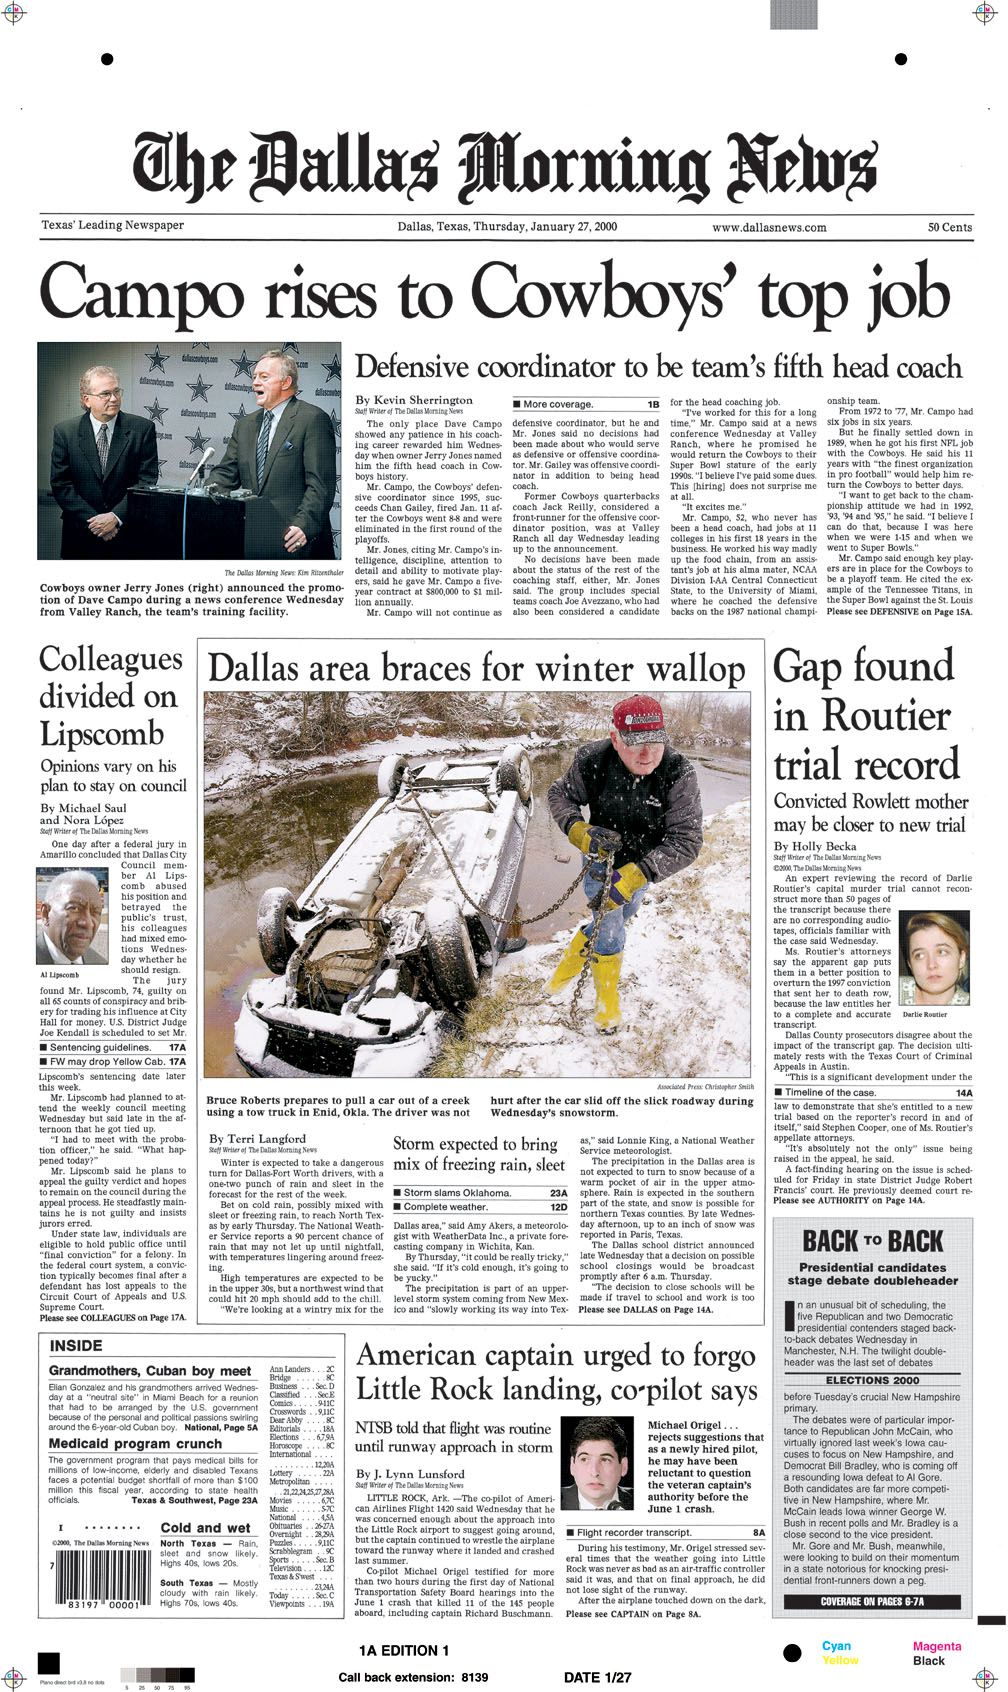 Front page of Jan. 27, 2000. 'Campo rises to Cowboys' top job.'